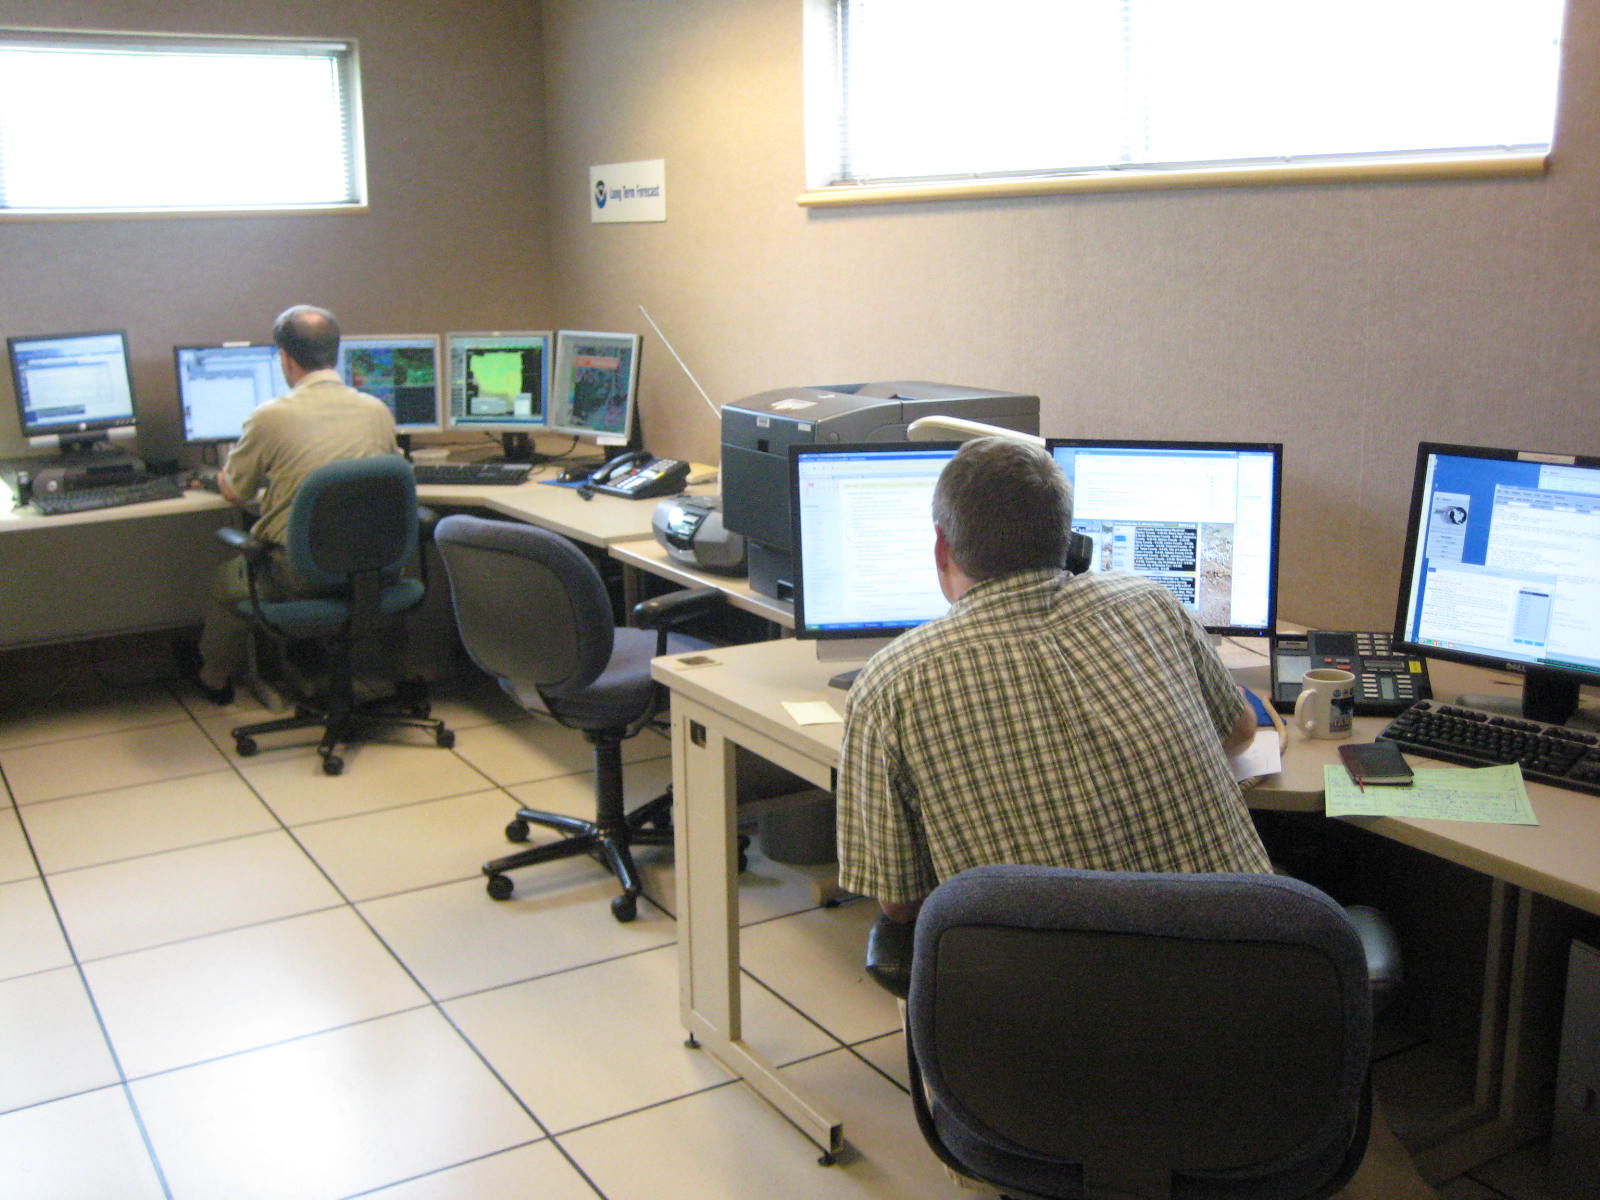 The NWS Des Moines Office on June 9, 2008. Roger Vachalek on the left and Rich Kinney (now at DVN) on the right.